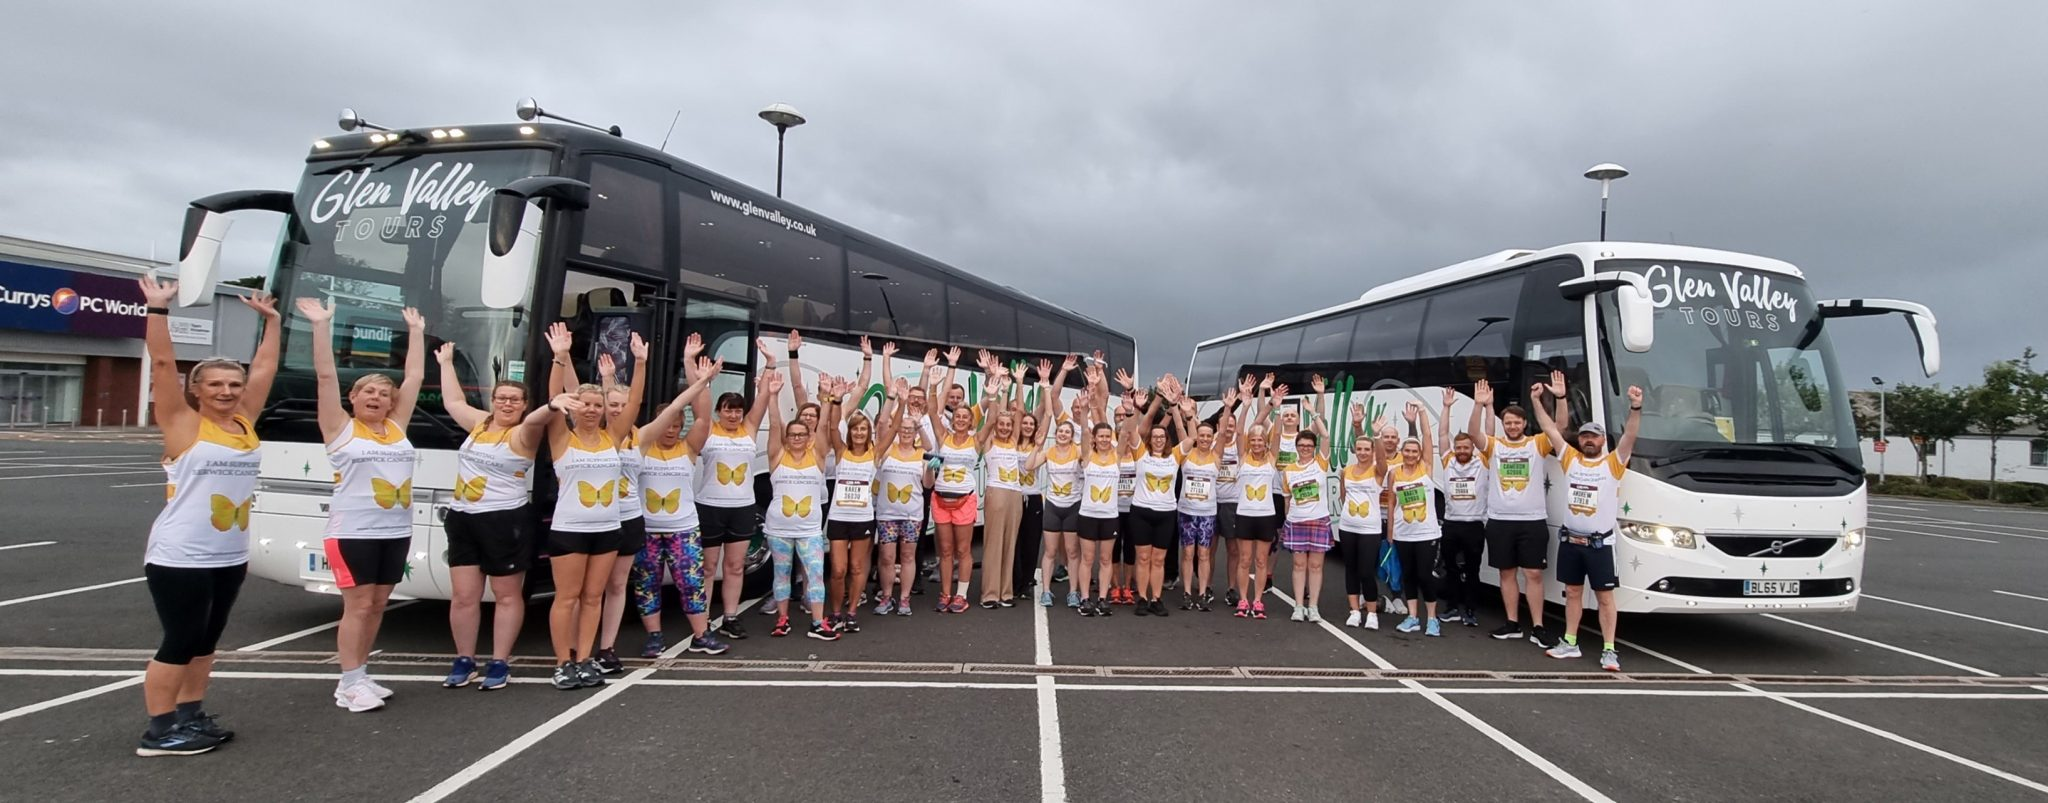 Some of our 2021 Team Runners o their way to Newcastle